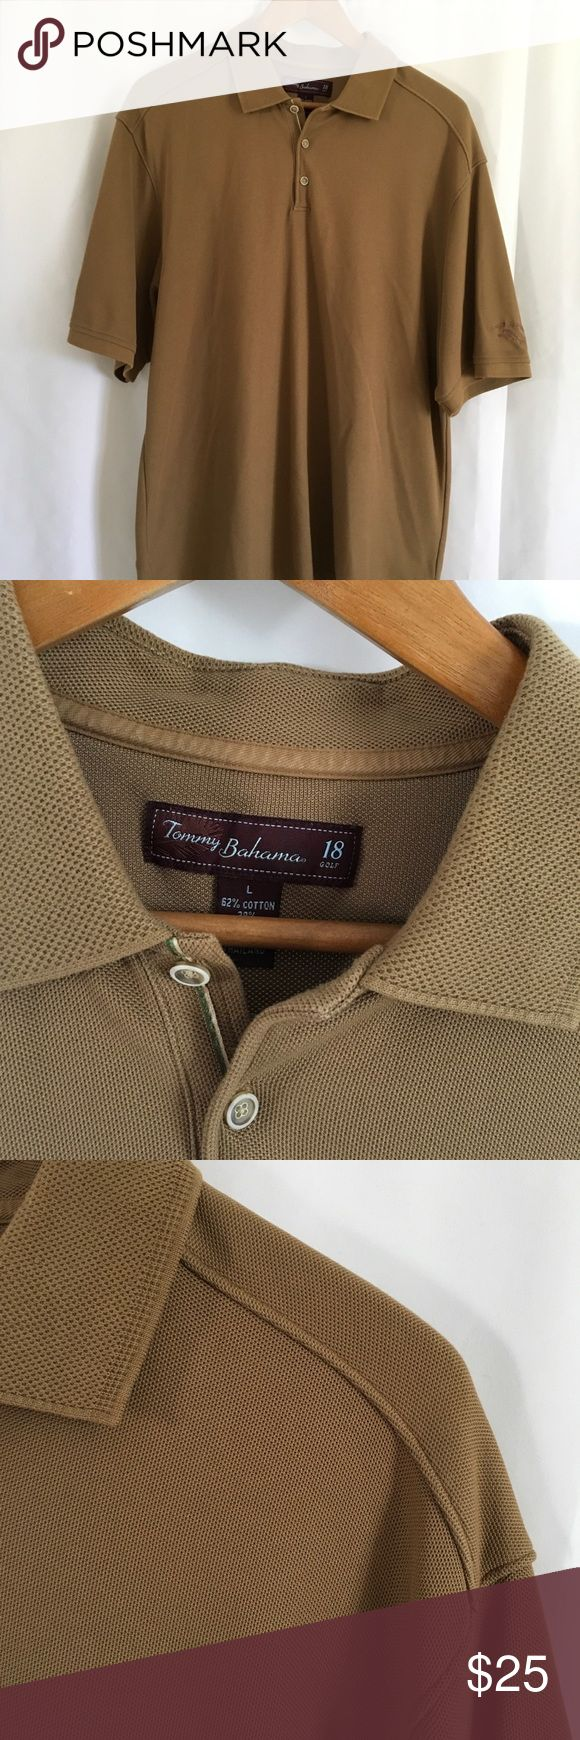 Tommy Bahama Golf Polo shirt Gently used Tommy Bahama brown Golf Polo shirt size large Tommy Bahama Shirts Polos